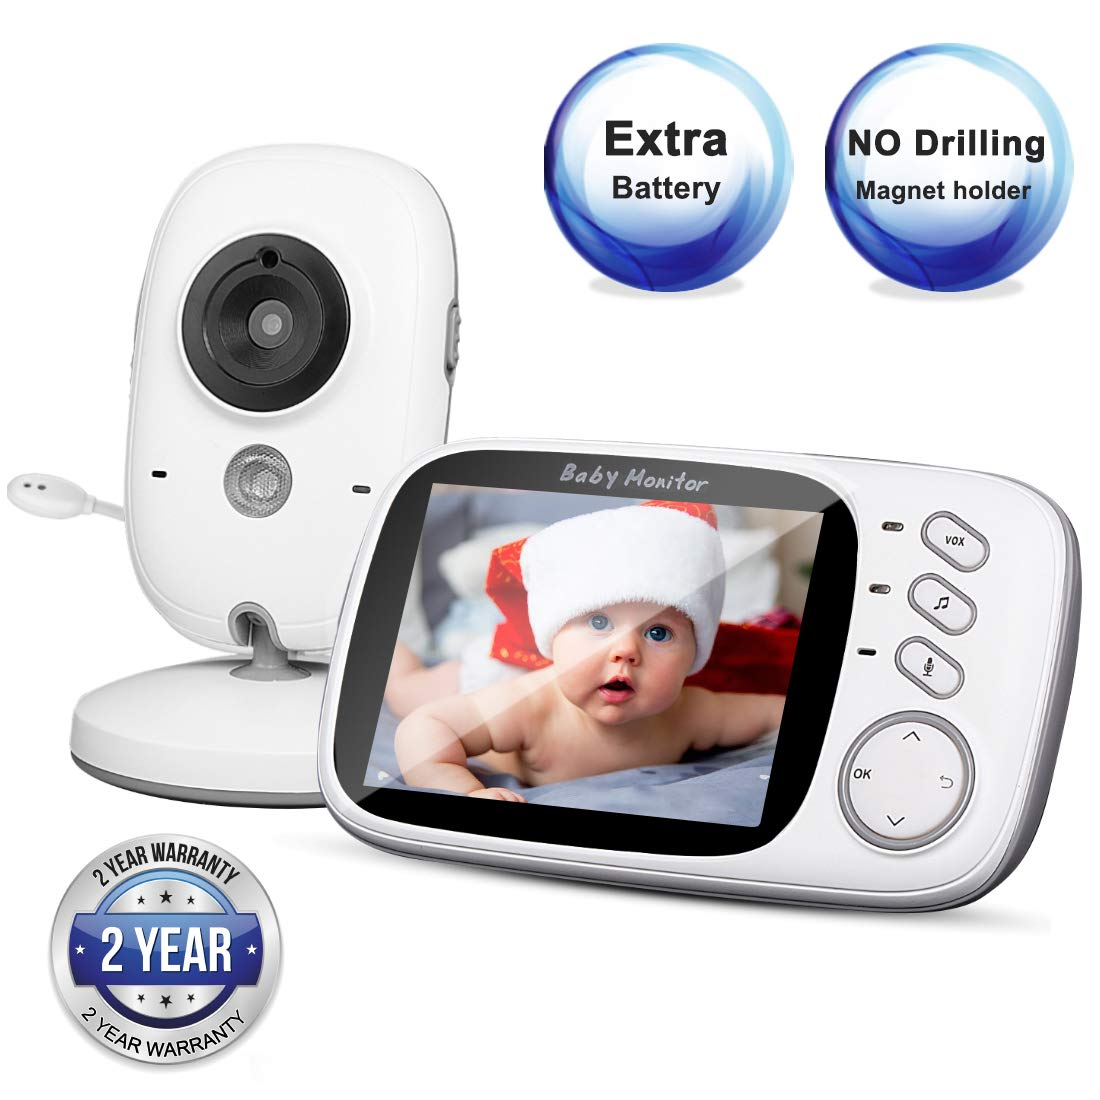 """Video Baby Monitor with Camera and Audio, 3.2"""" LCD Large Screen, Temperature Monitor with Night Vision, Two-Way Talk, VOX, No Drilling Magnet Holder, for Elderly/Pet/Baby/Nanny"""